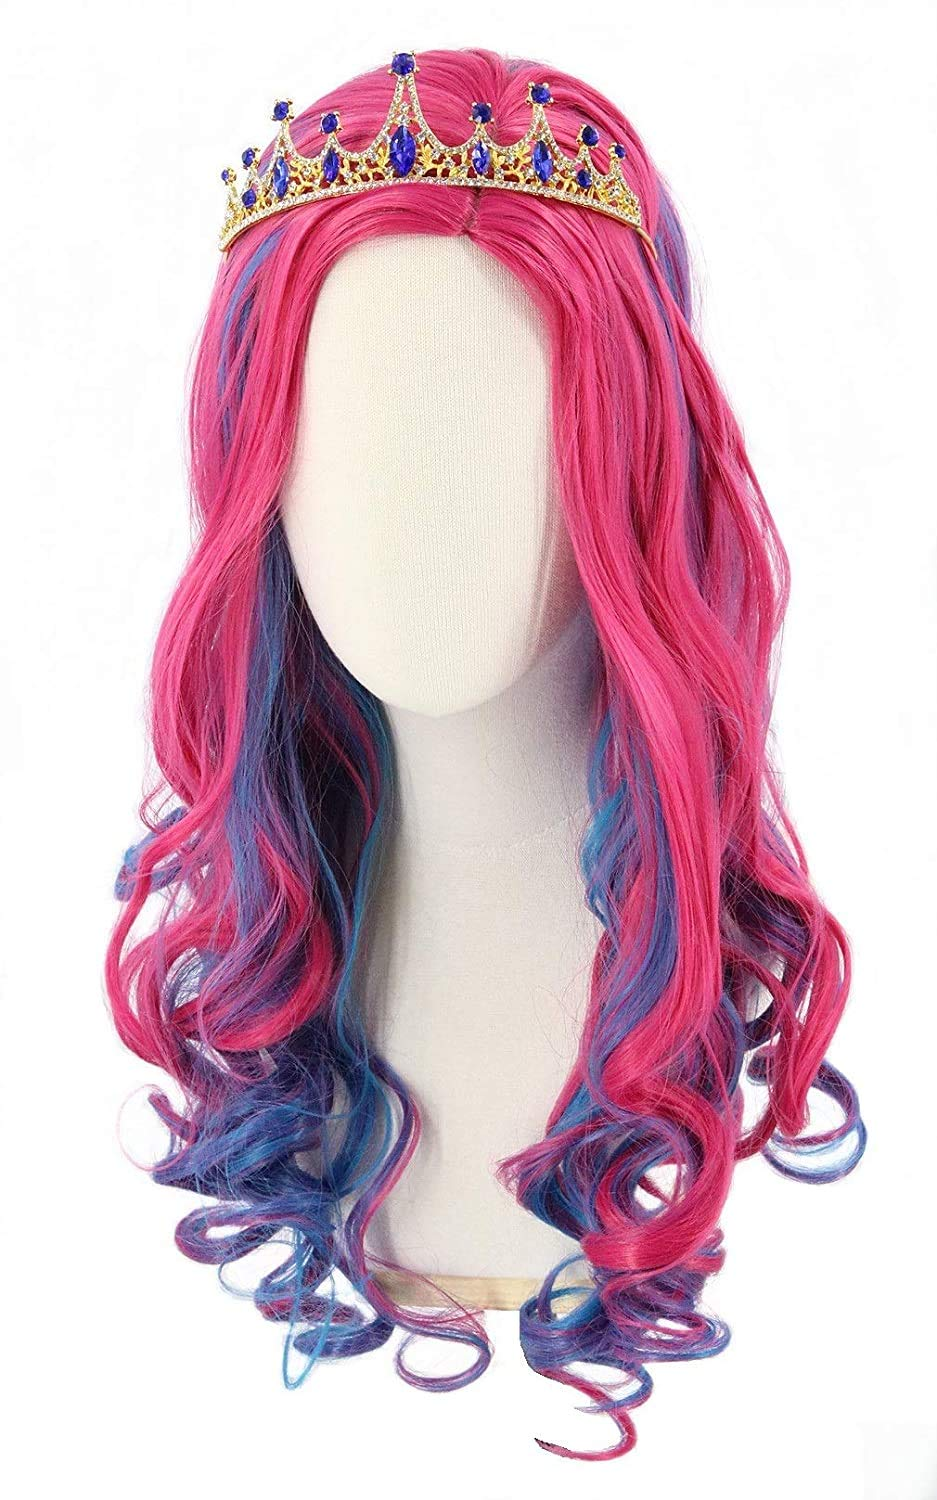 Topcosplay Women or Girls Wig Cosplay Costume for Lon Max 67% OFF Audrey Bargain sale